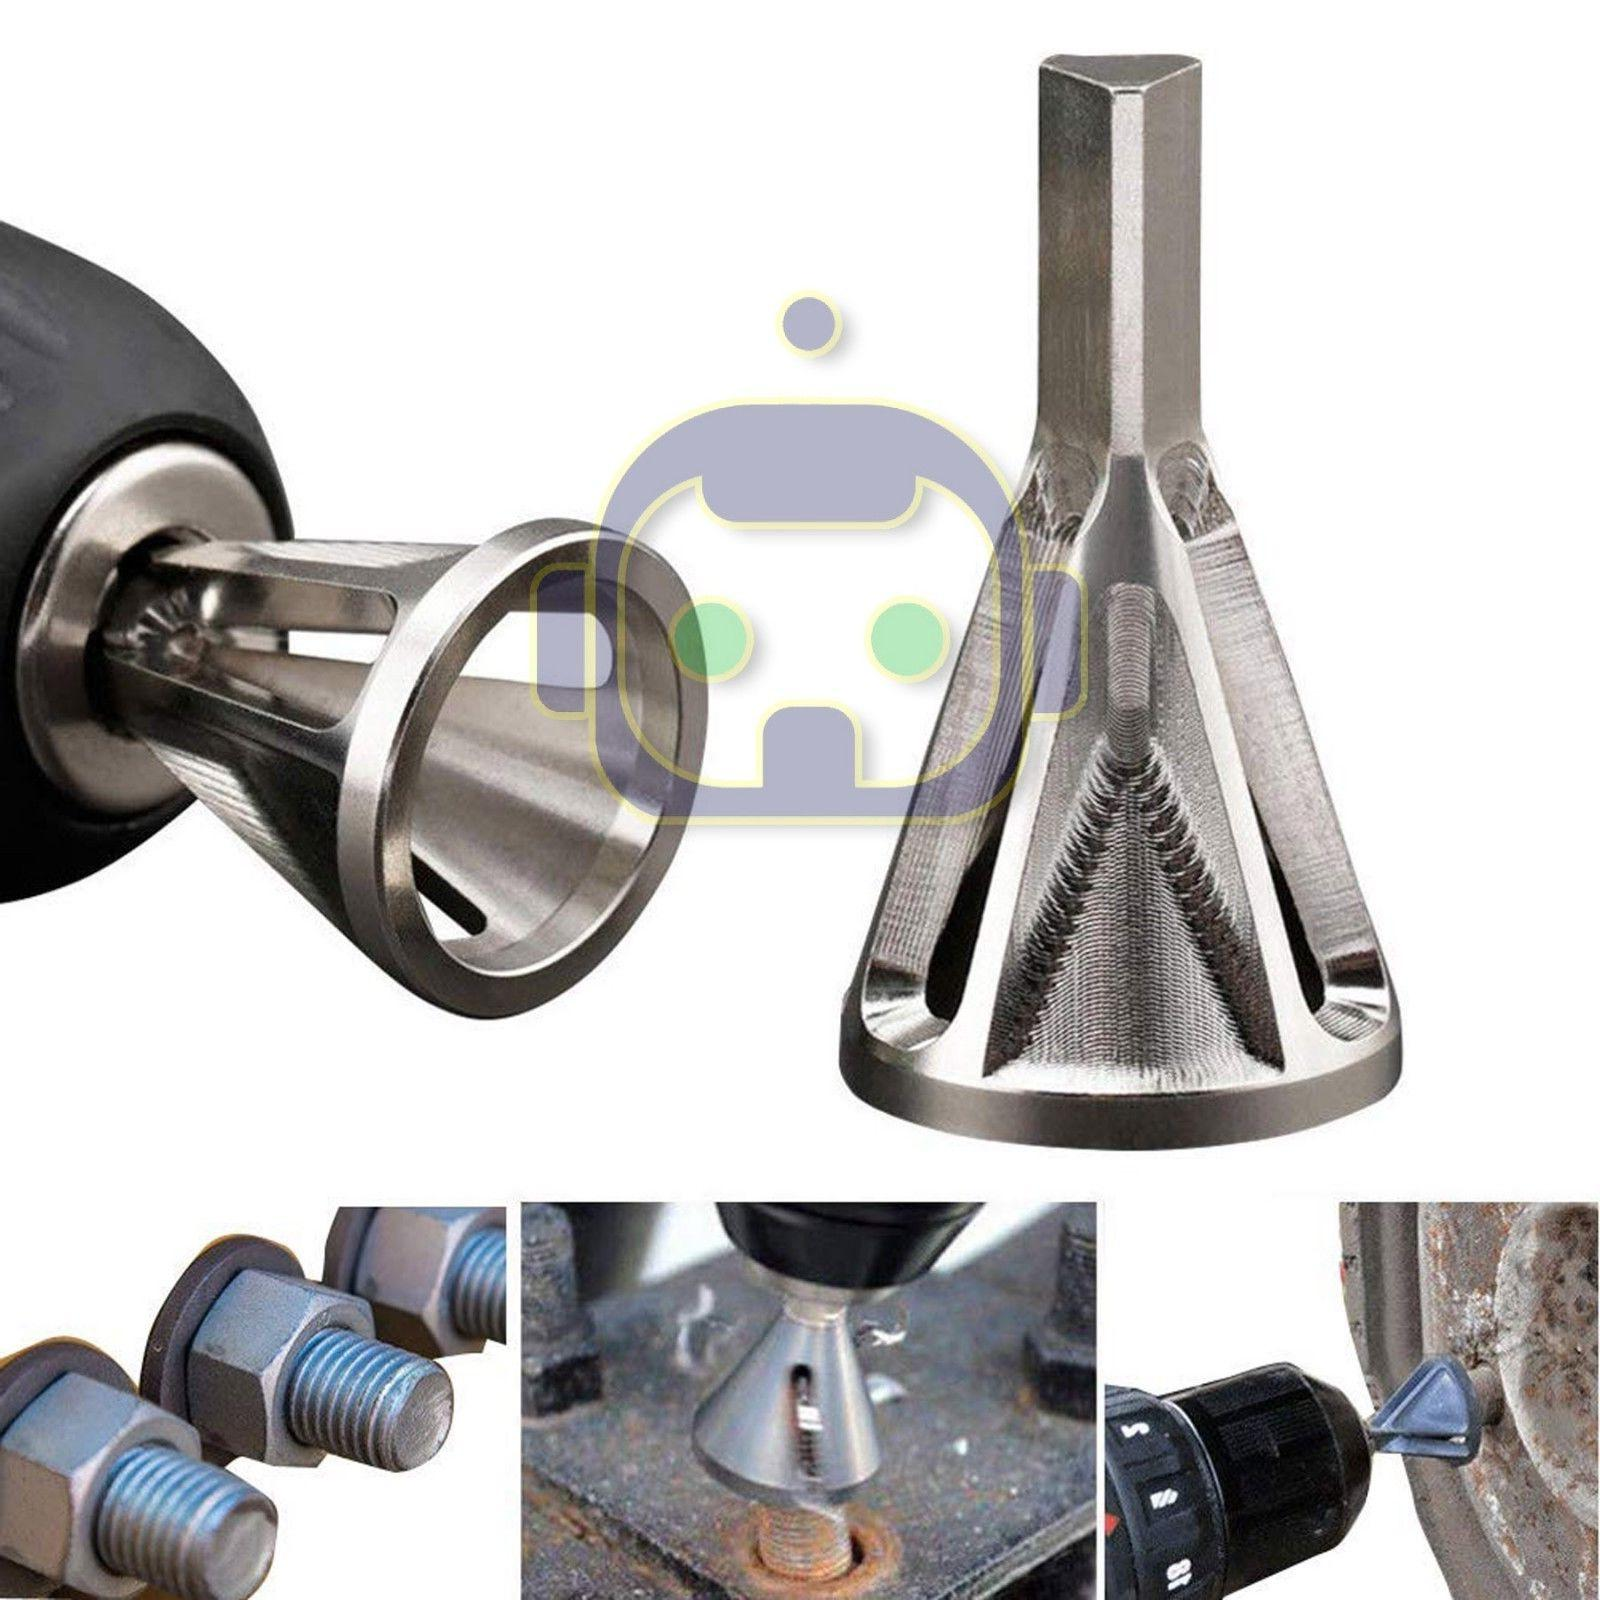 Deburring Stainless Steel Tools